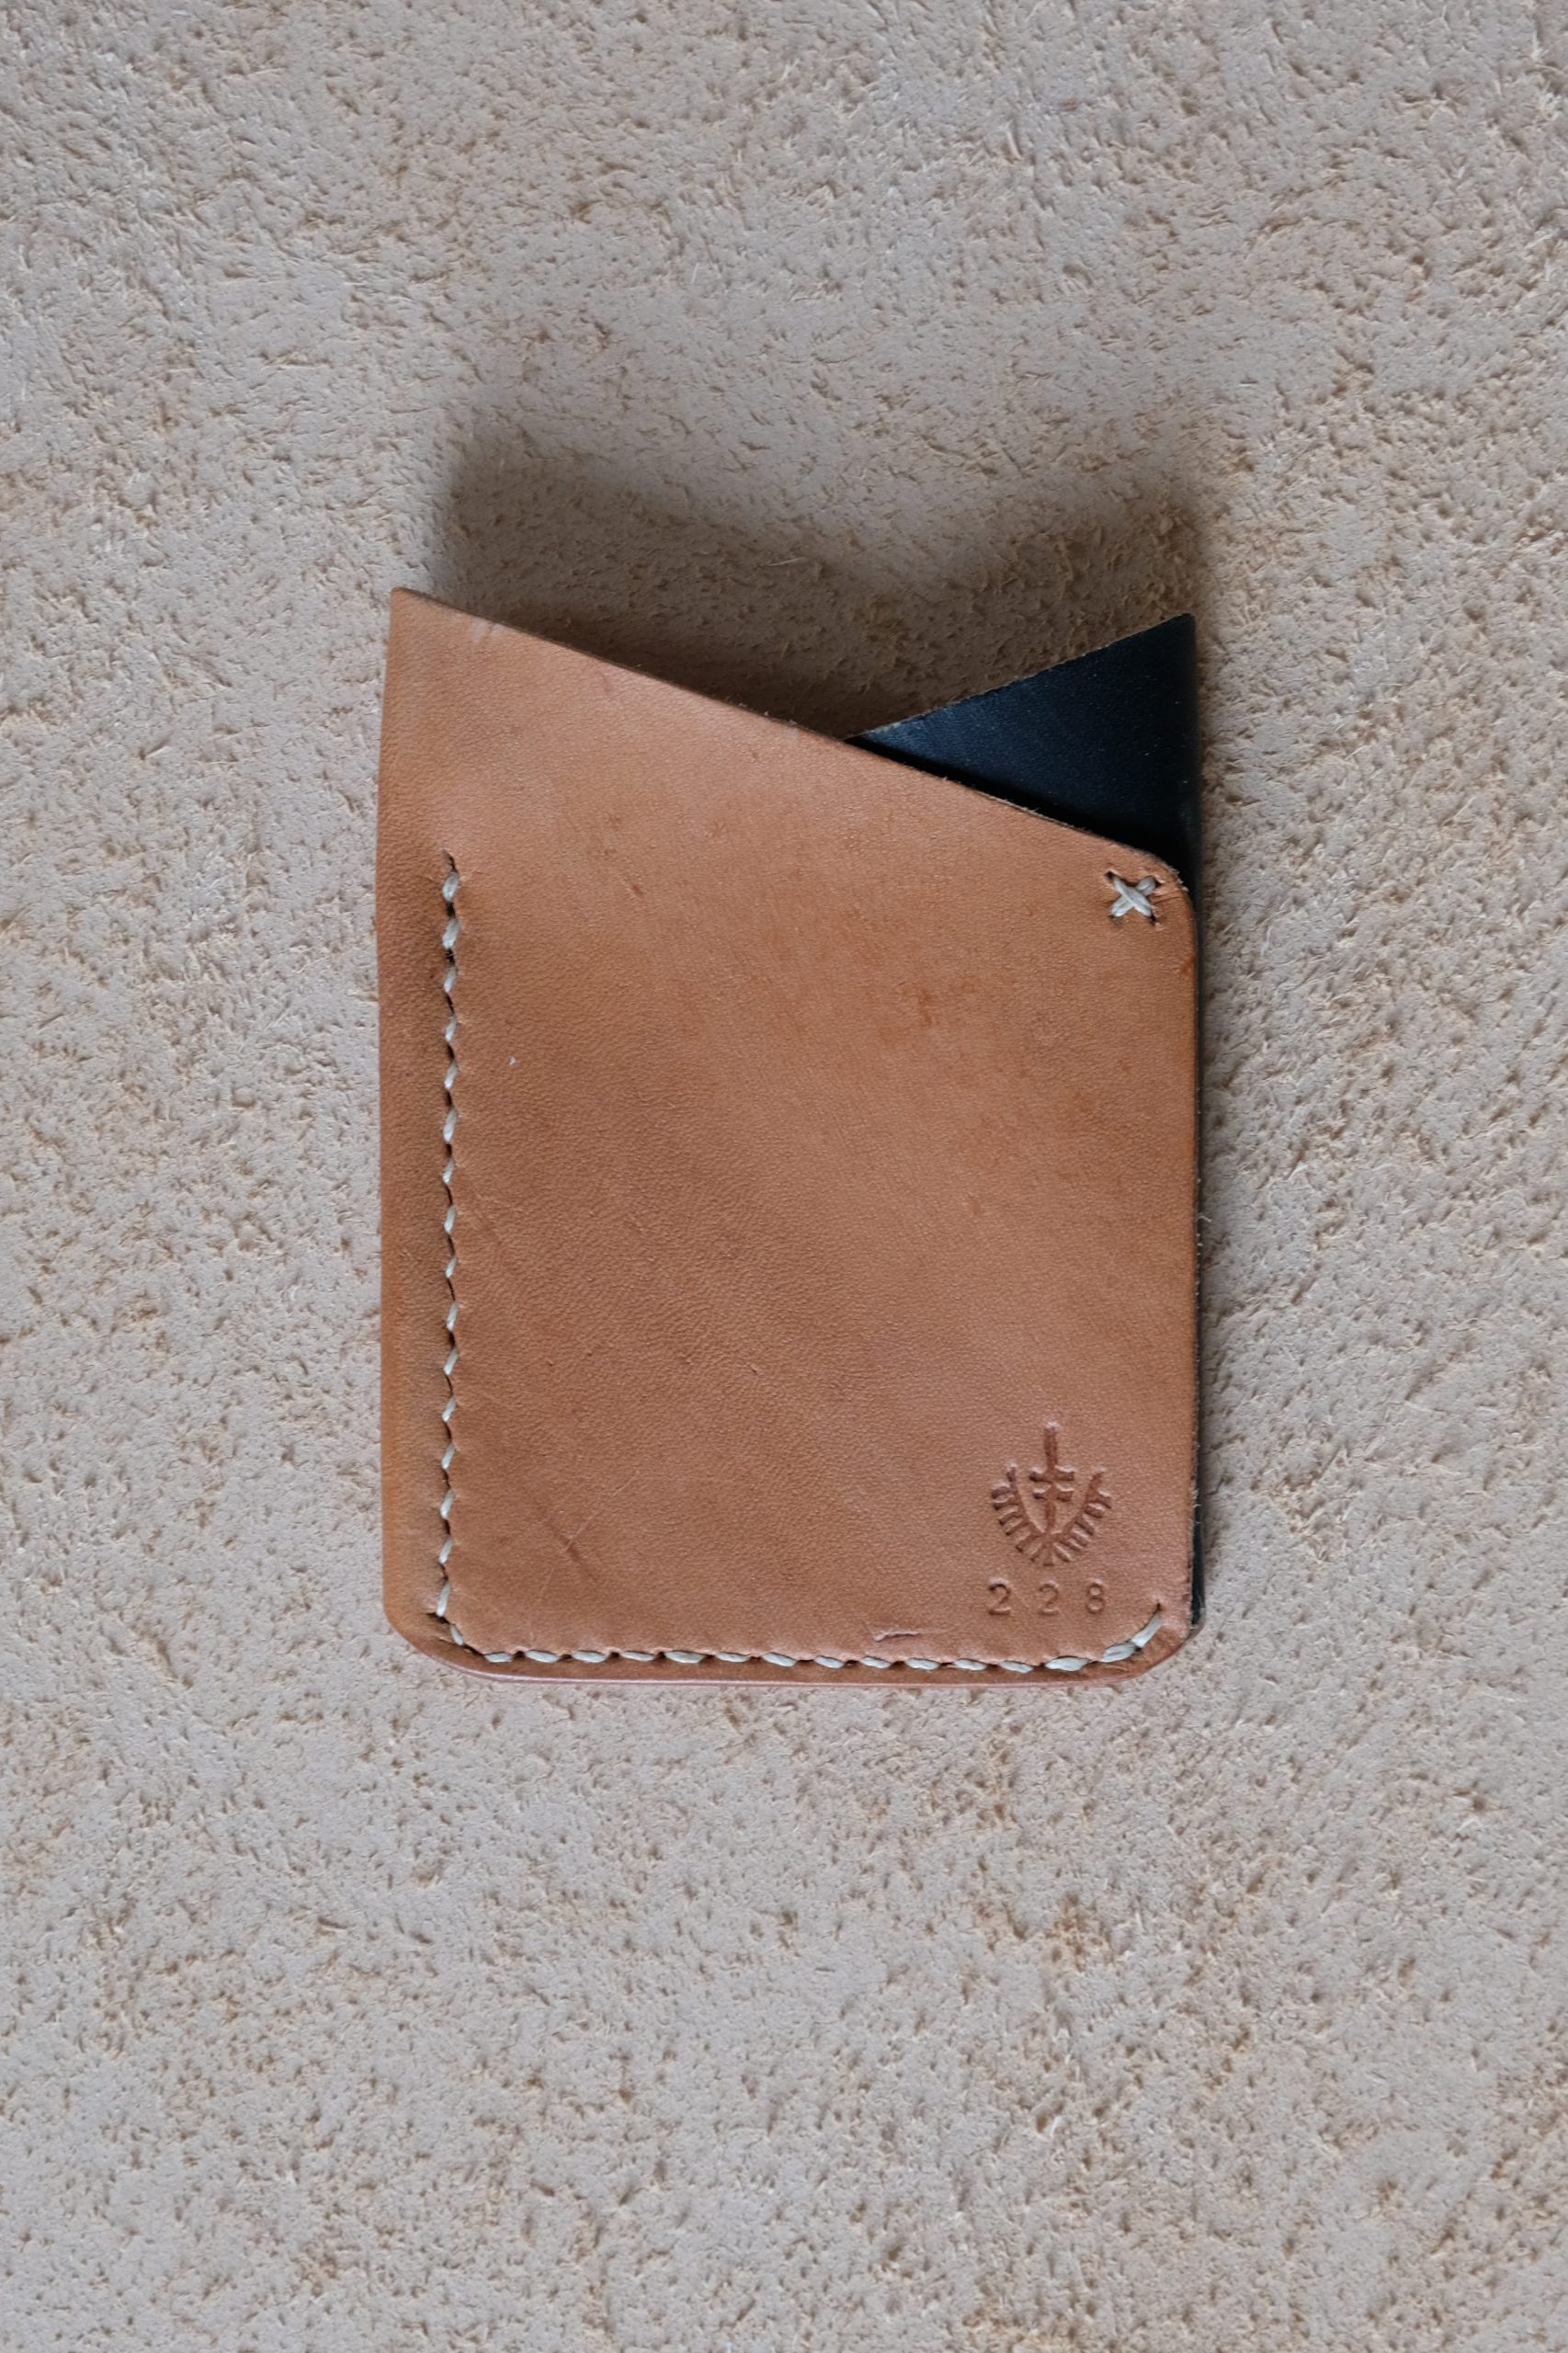 lerif designs leather fox ears cardholder in natural and indigo on beige backgroun